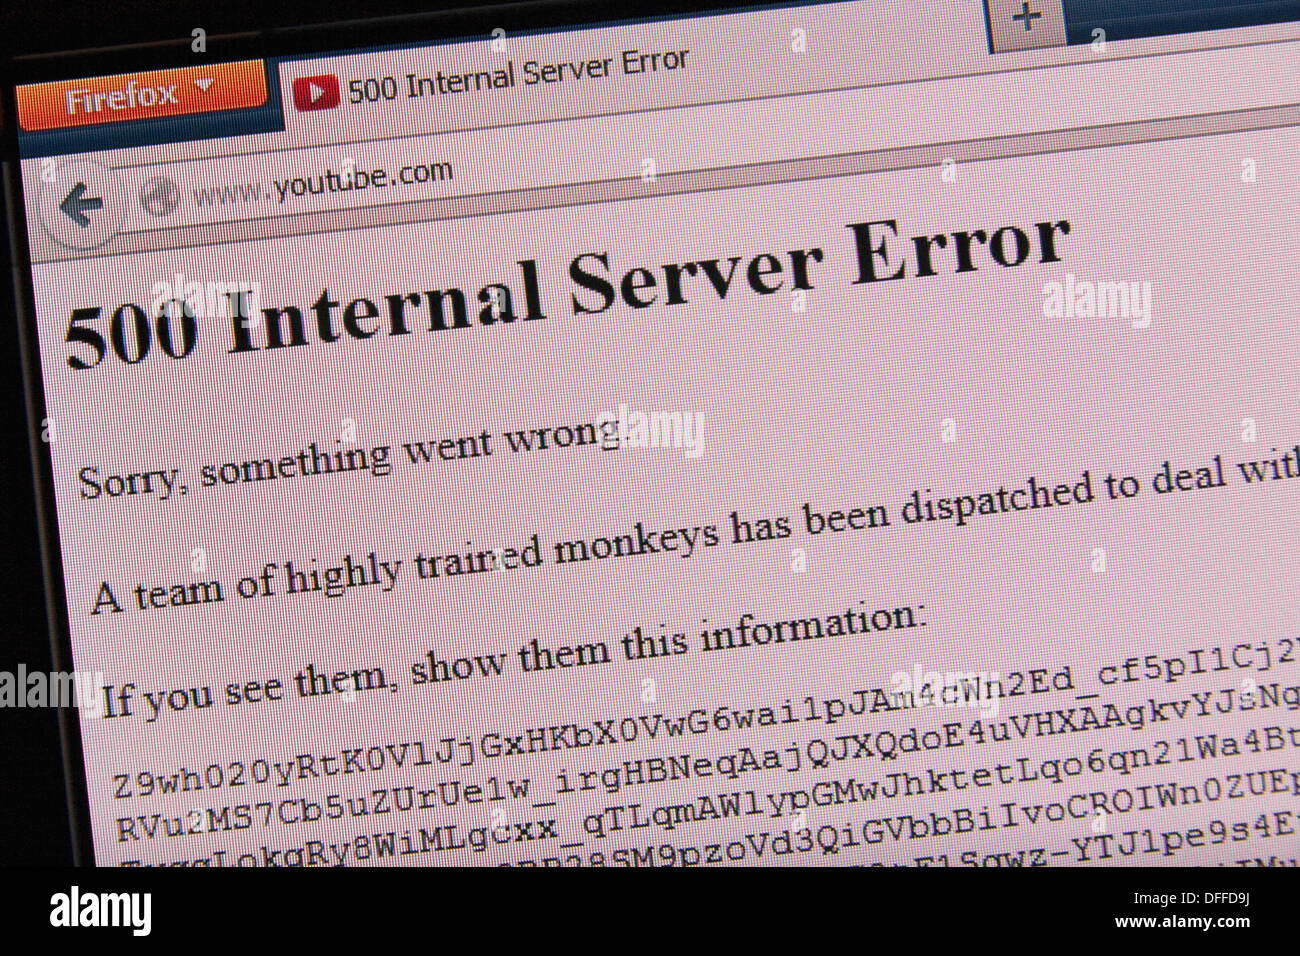 """The """"team of highly trained monkeys"""" server error screen when you cannot connect to YouTube.com. Stock Photo"""